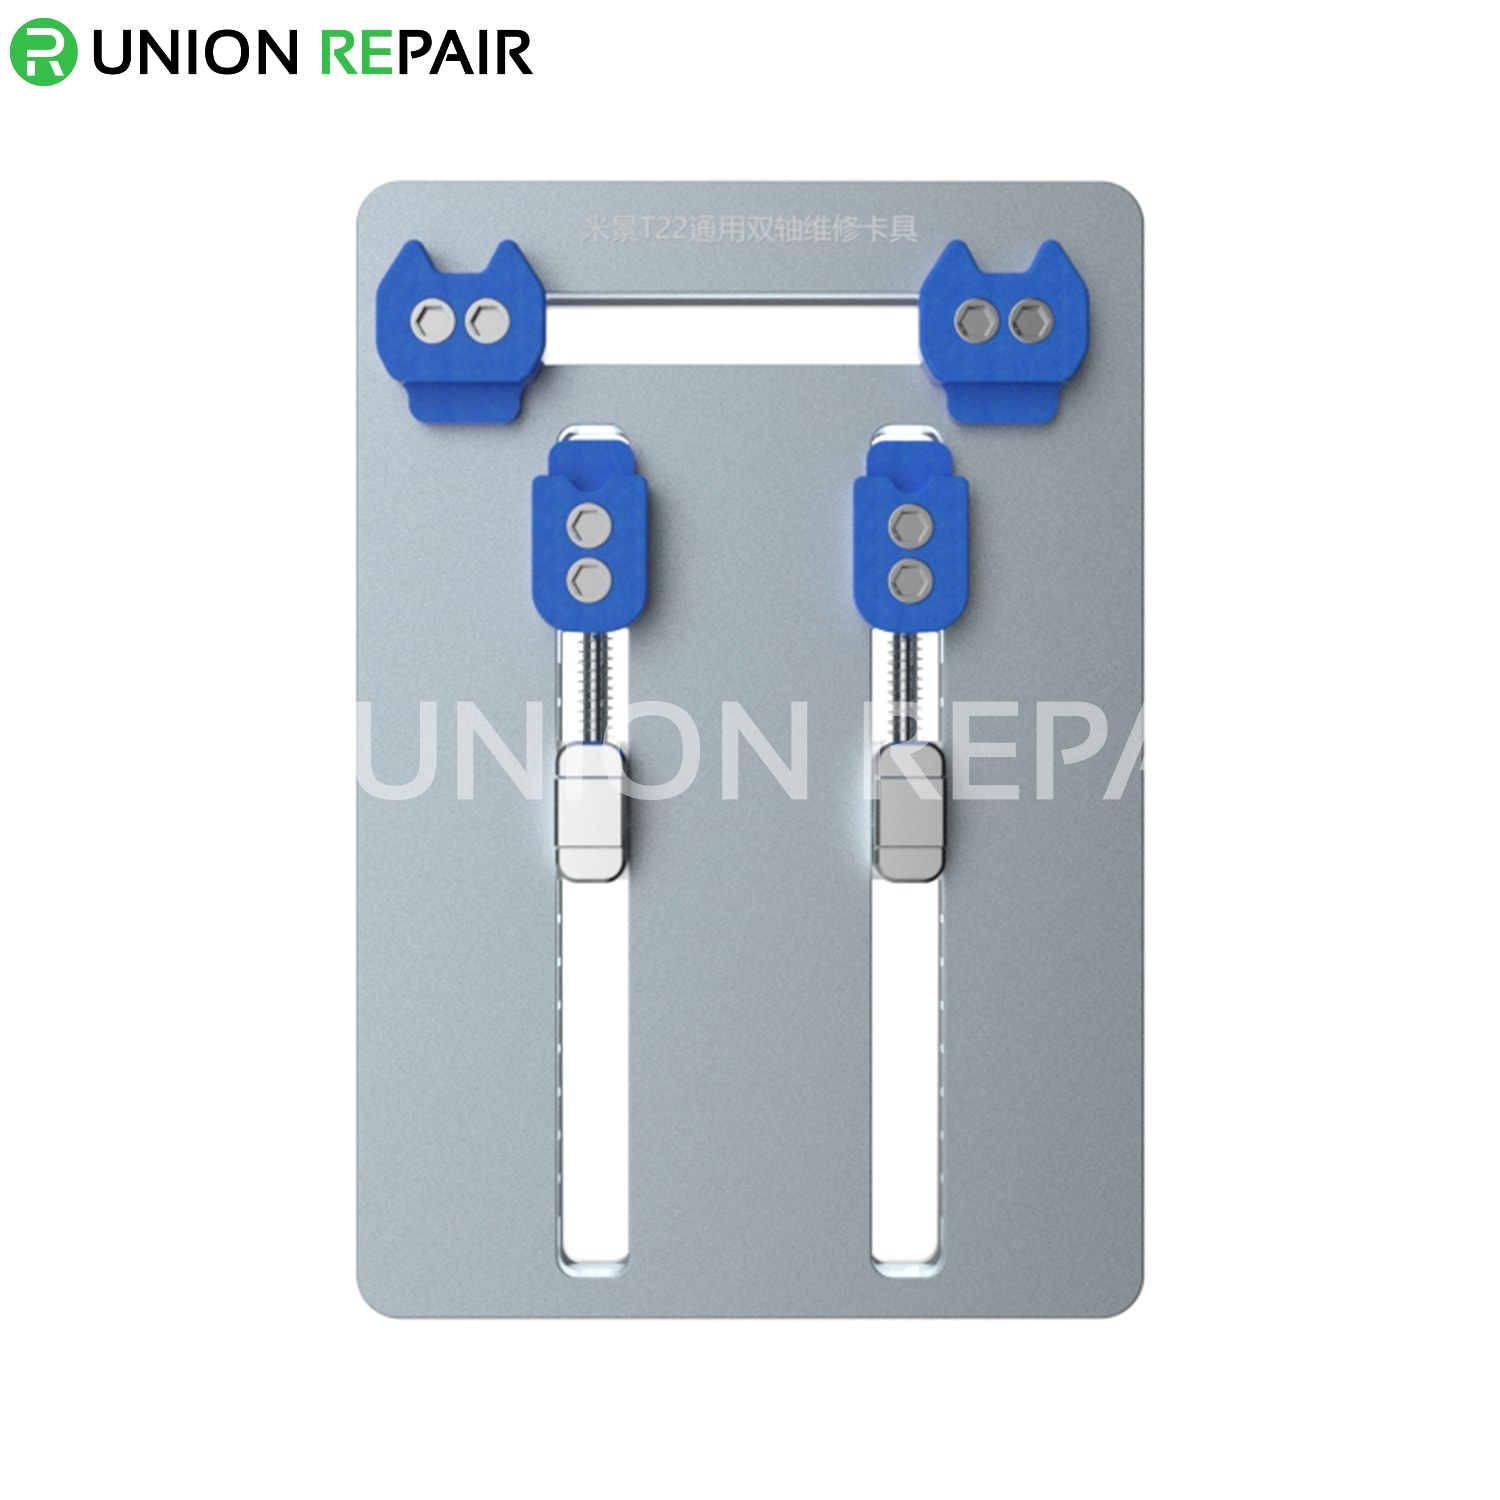 MiJing T22 Universal Dual-Shaft Multifunction PCB Board Holder Fixture